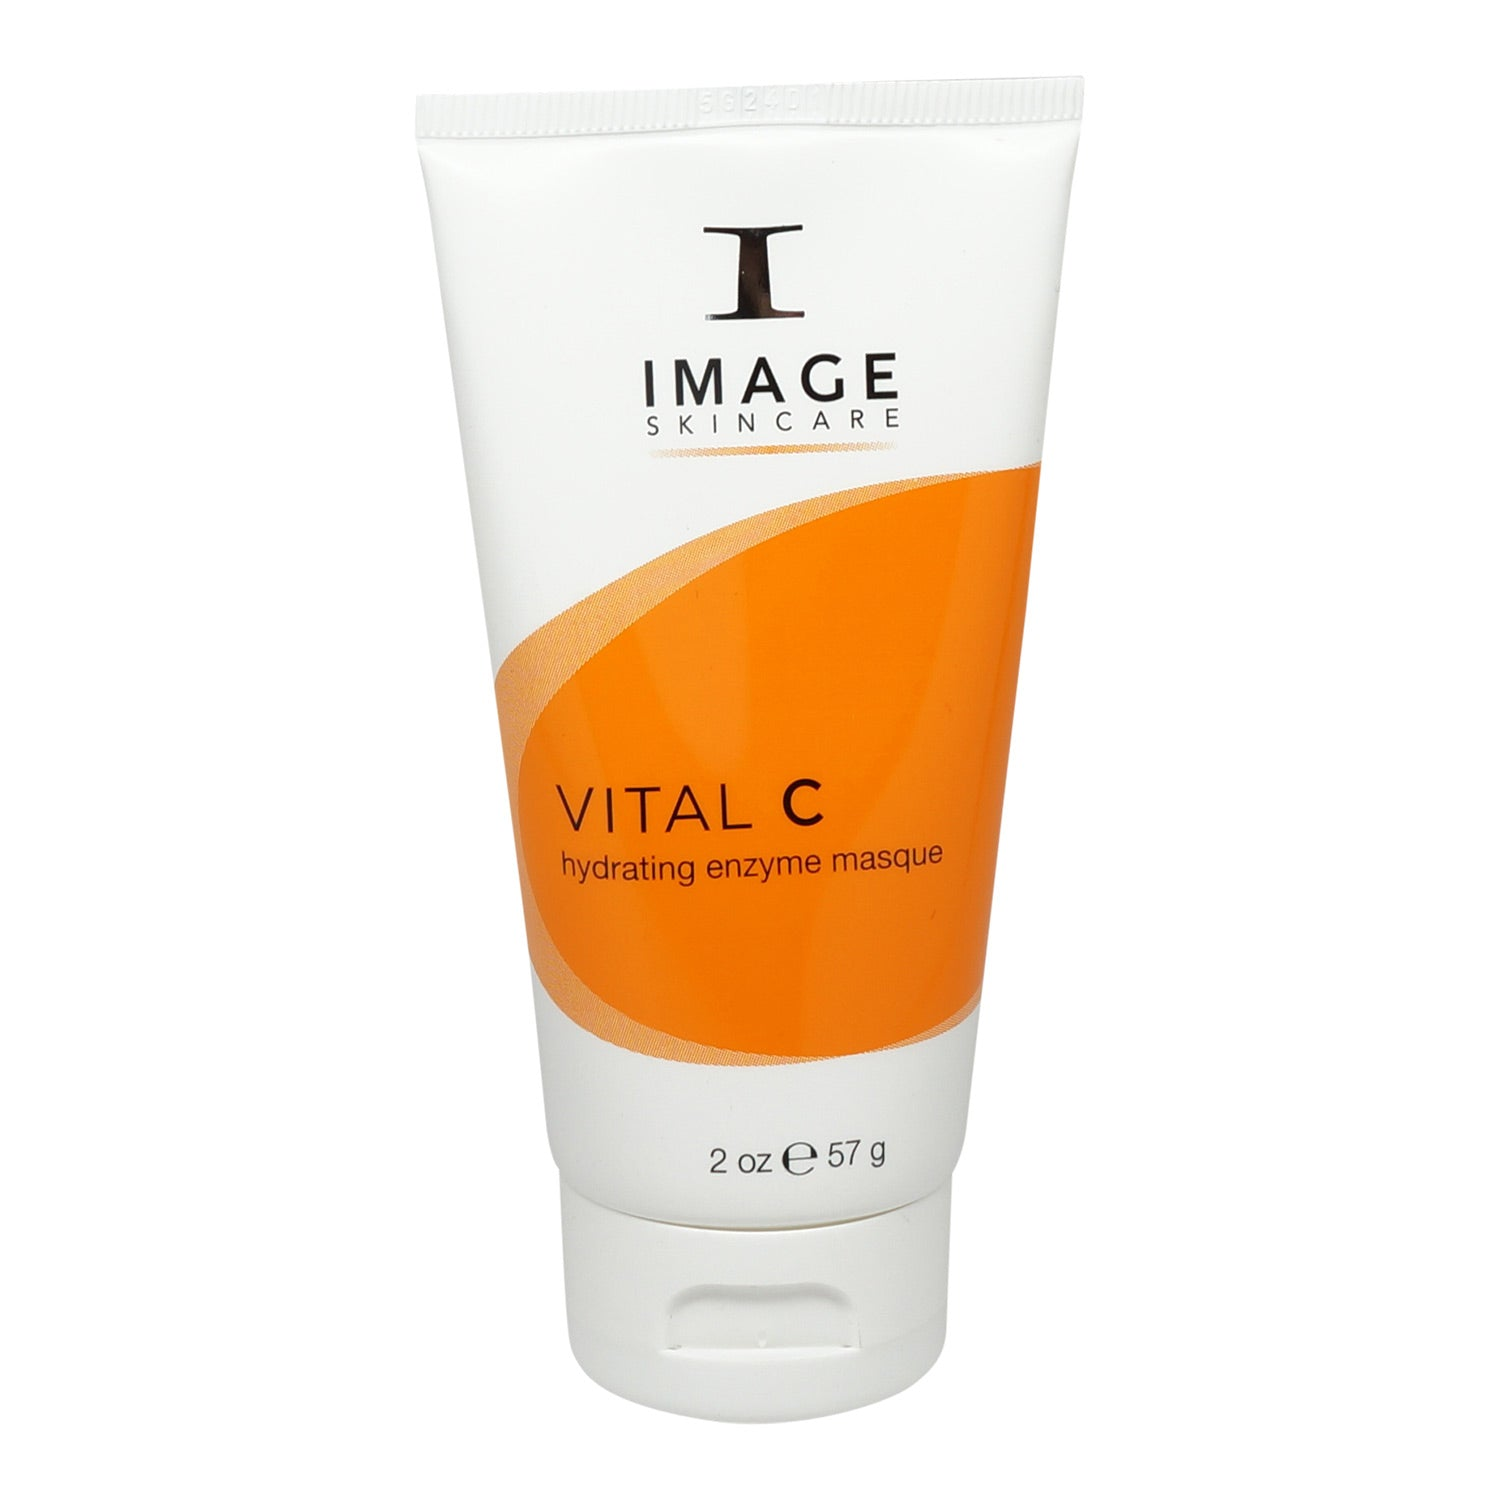 IMAGE ~ VITAL C ~ HYDRATING ENZYME MASQUE ~ 2OZ